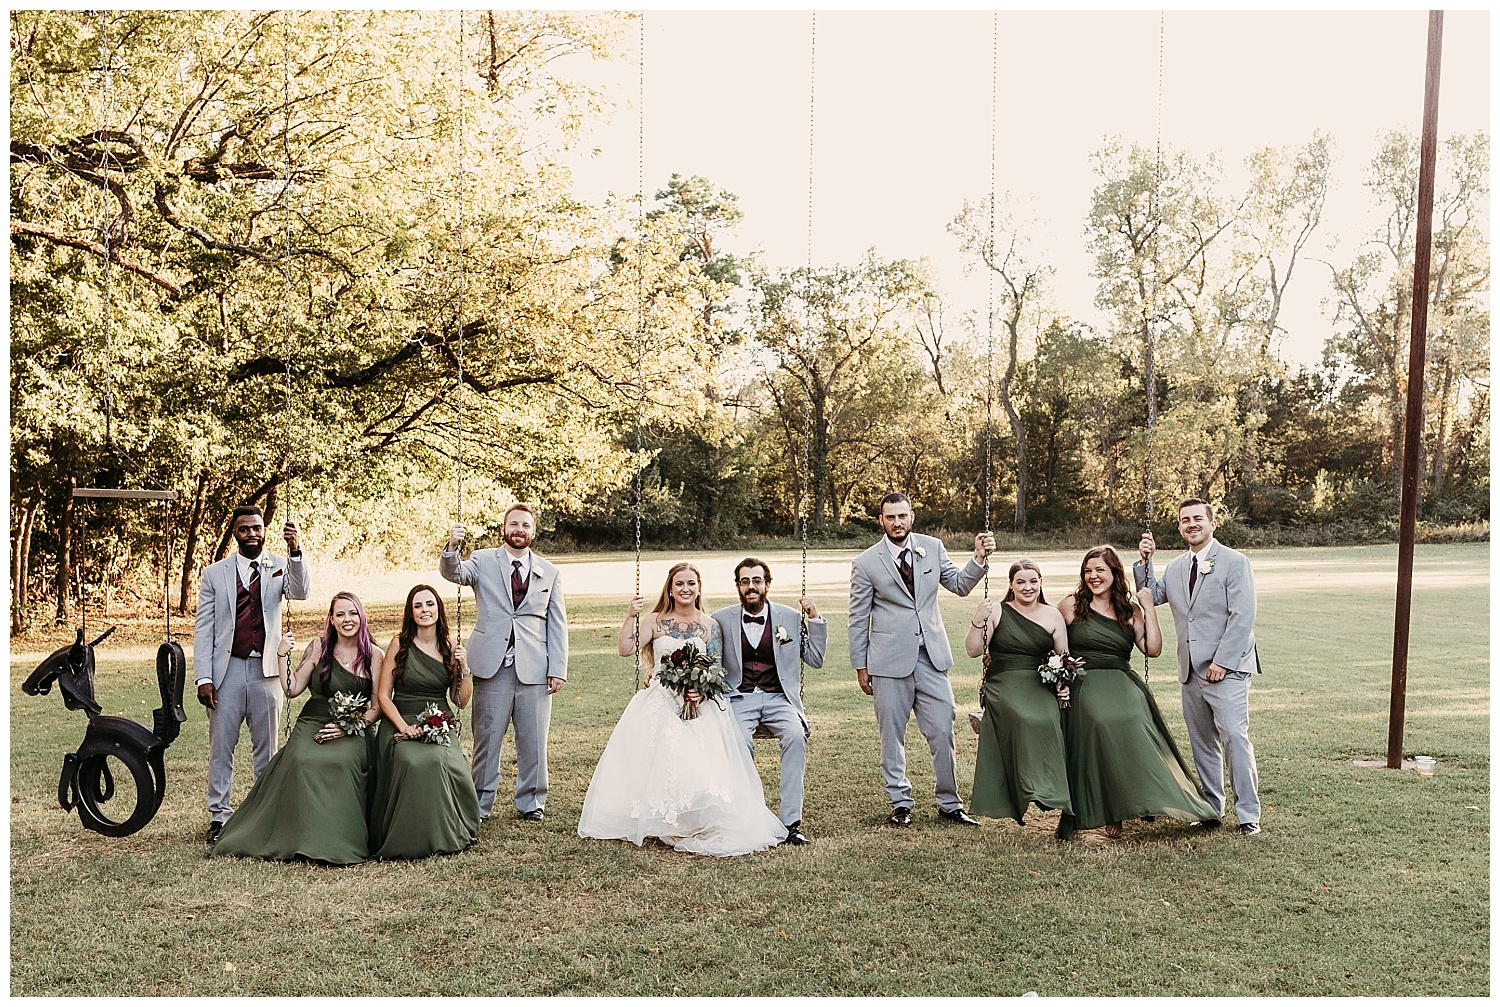 Bridal Party on Swing set at The Ranch of the Saints in Jones, Oklahoma